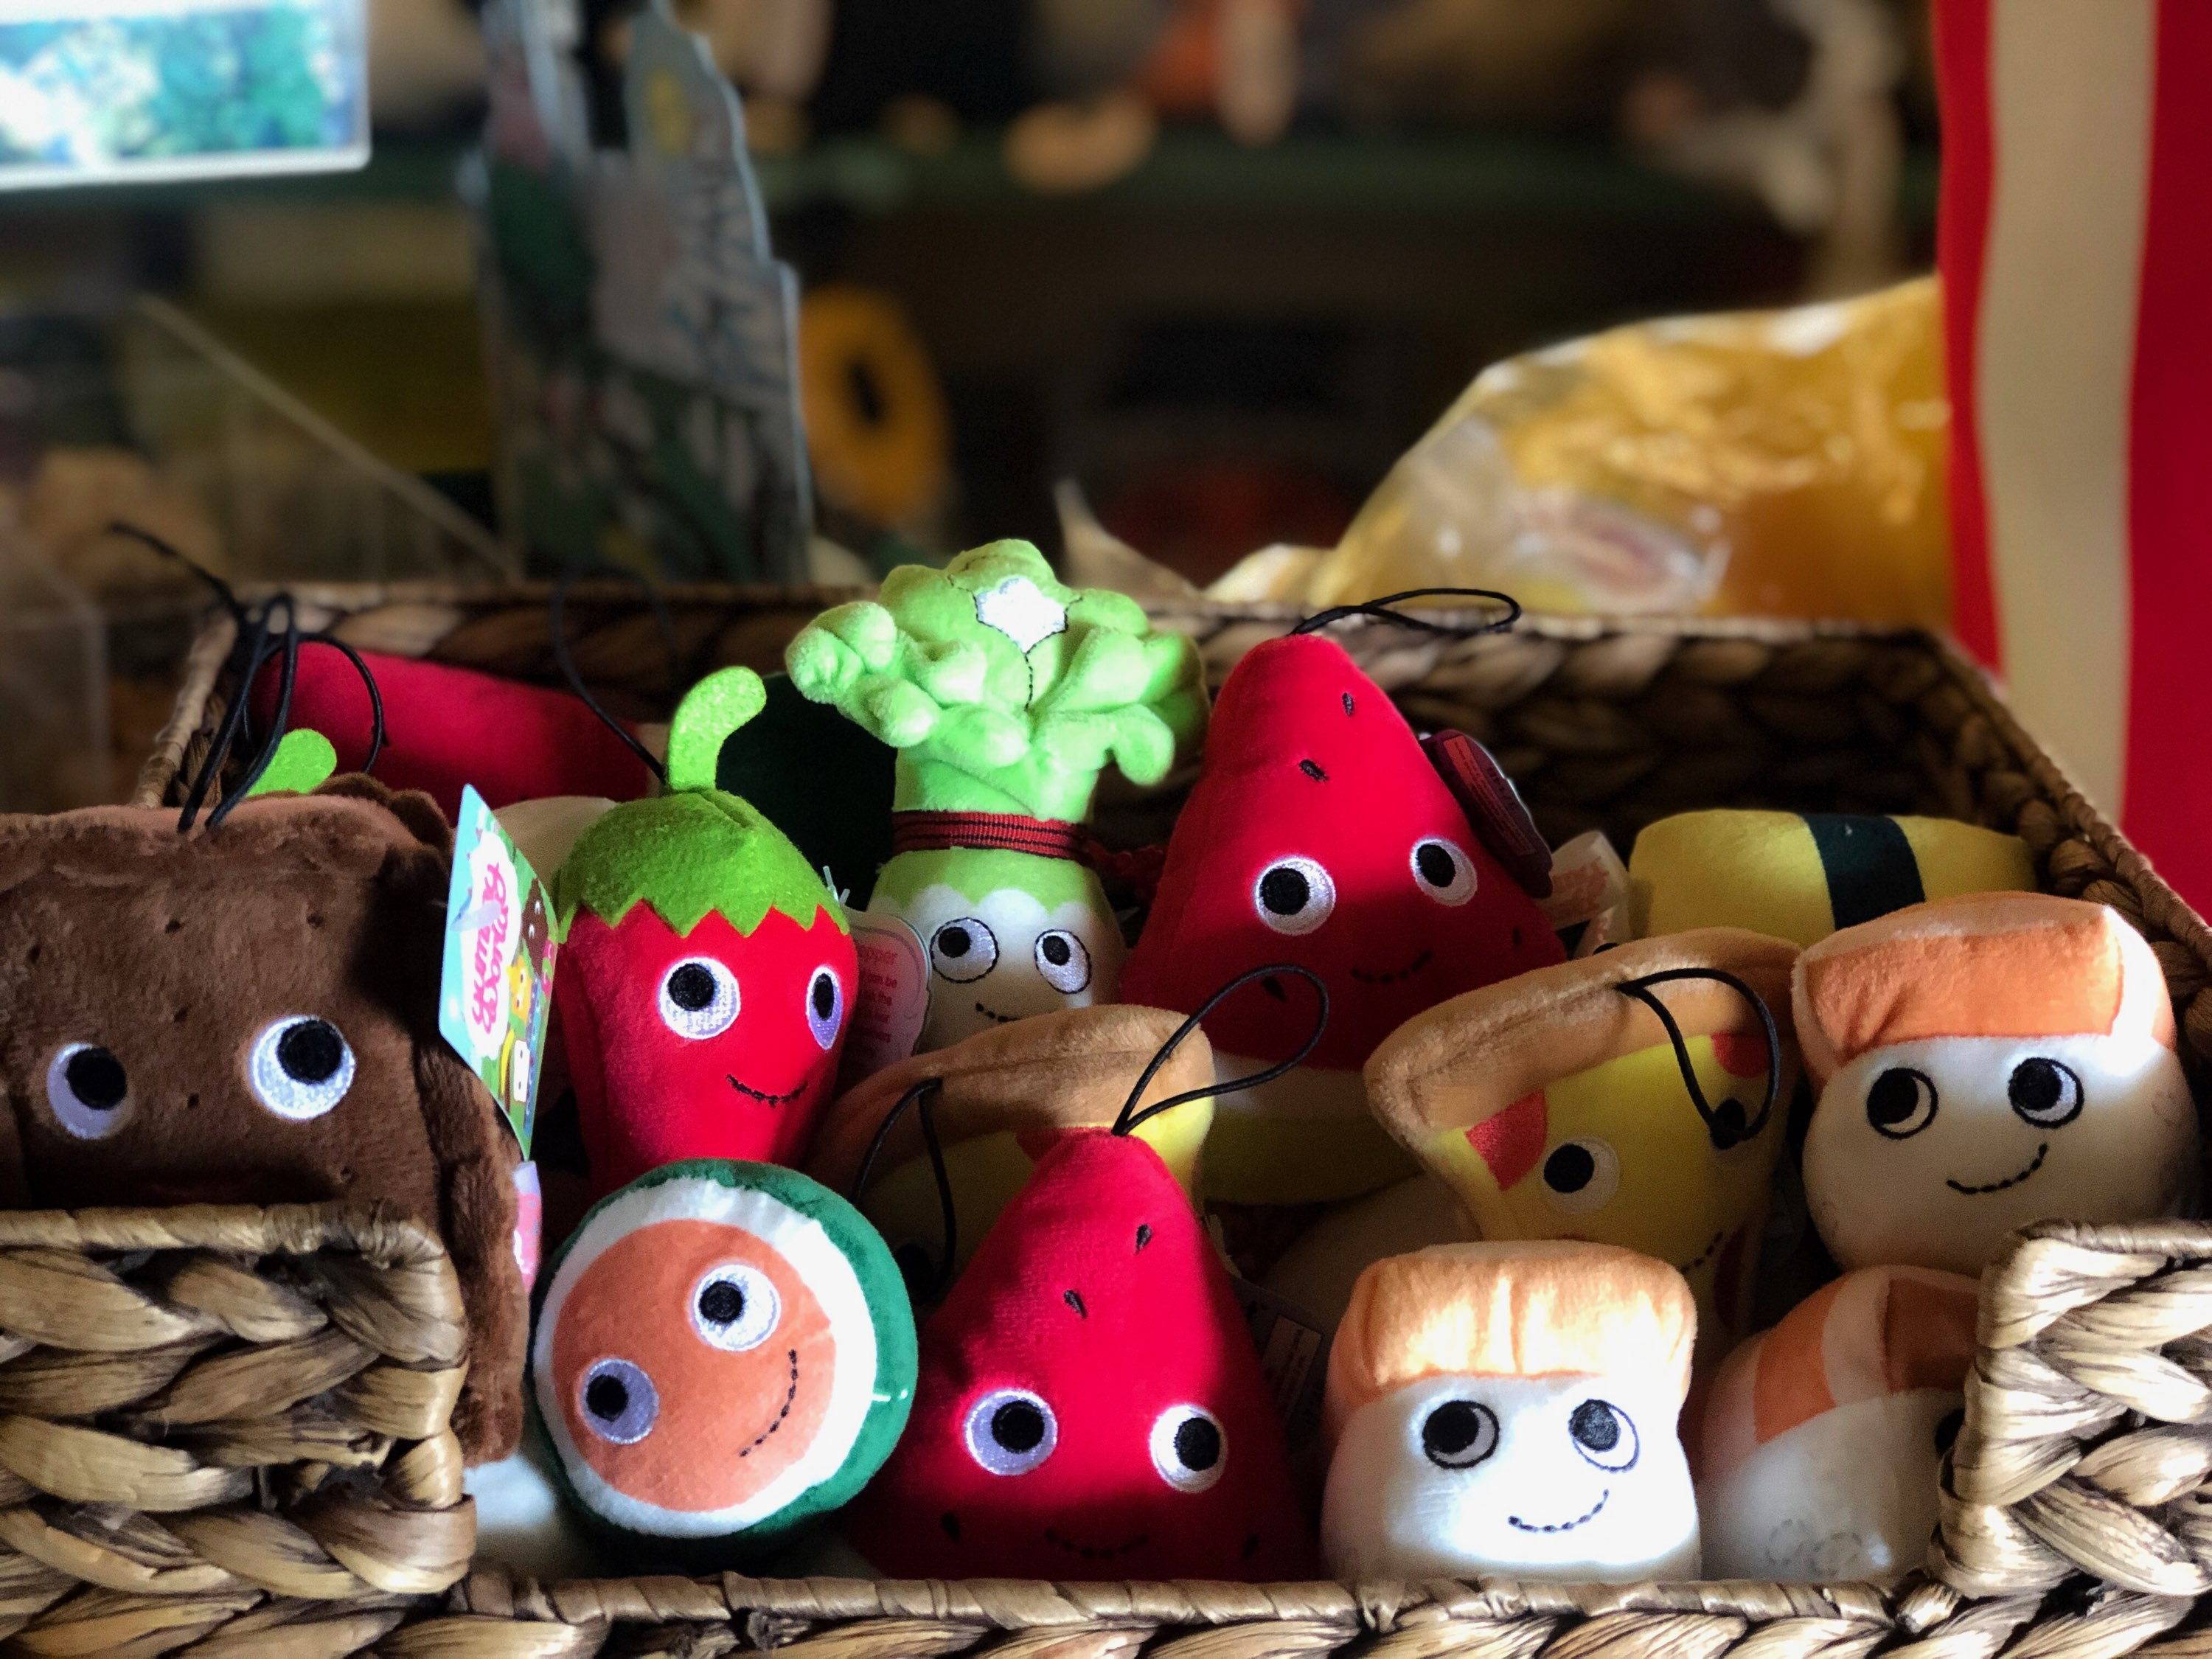 A selection of plush toys in the shape of different types of food.